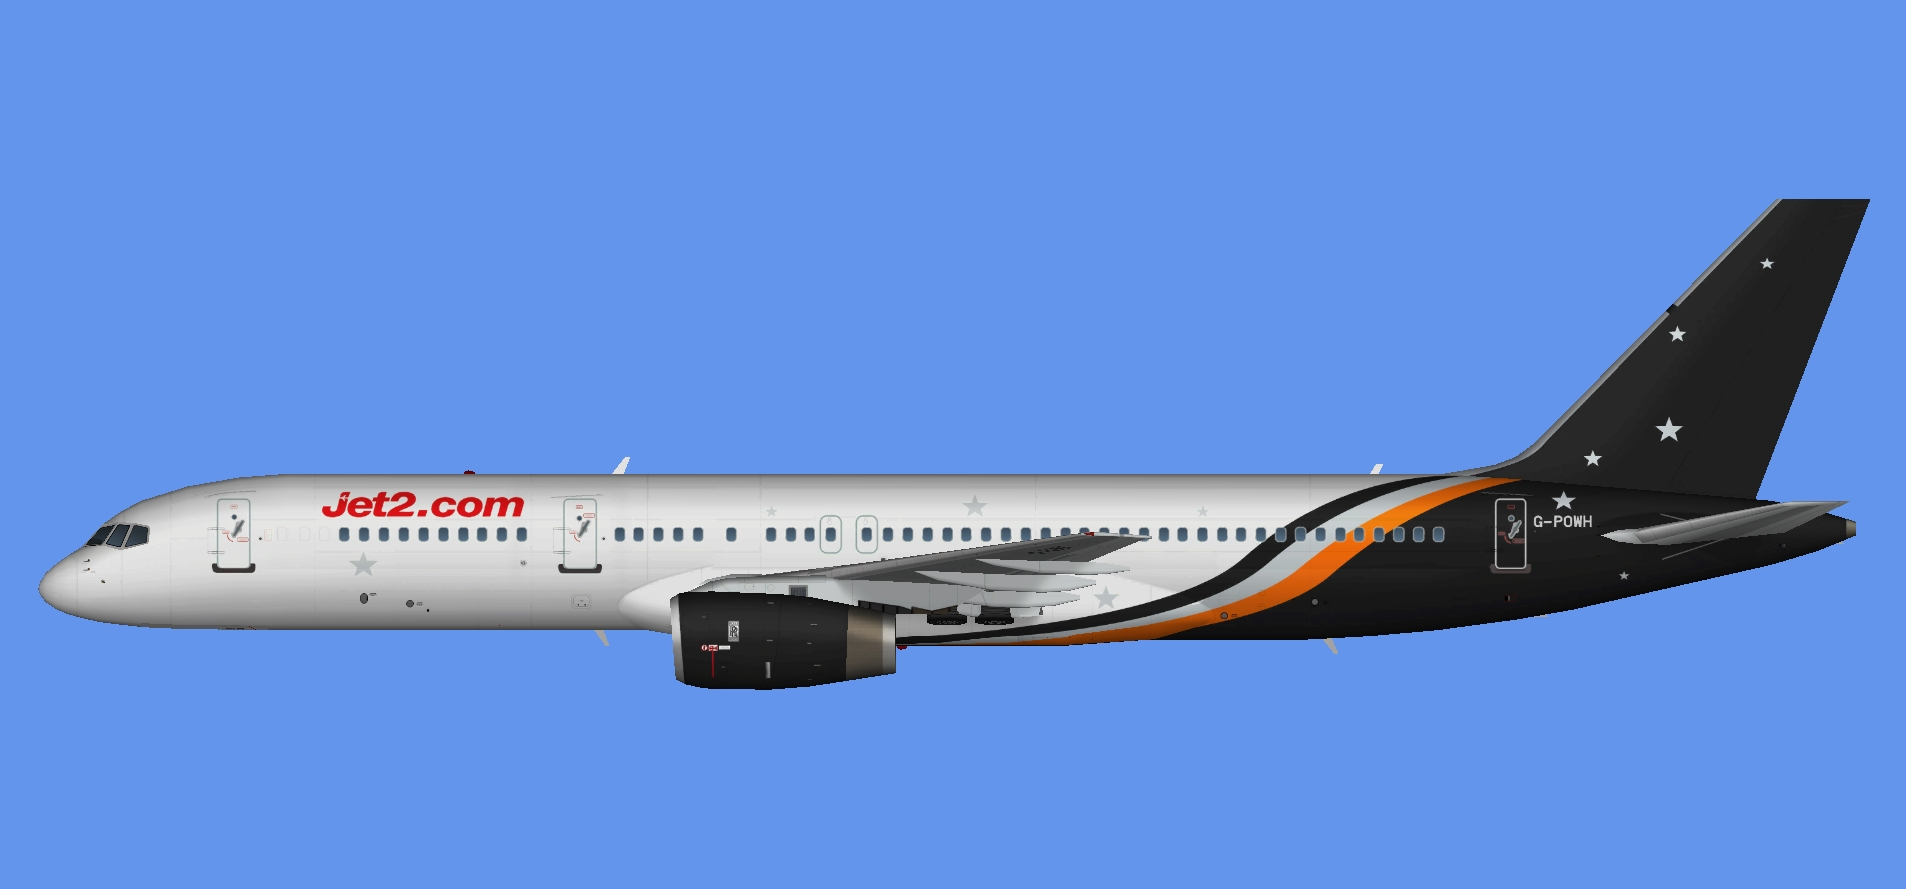 Jet2.com 757 opb Titan Airways